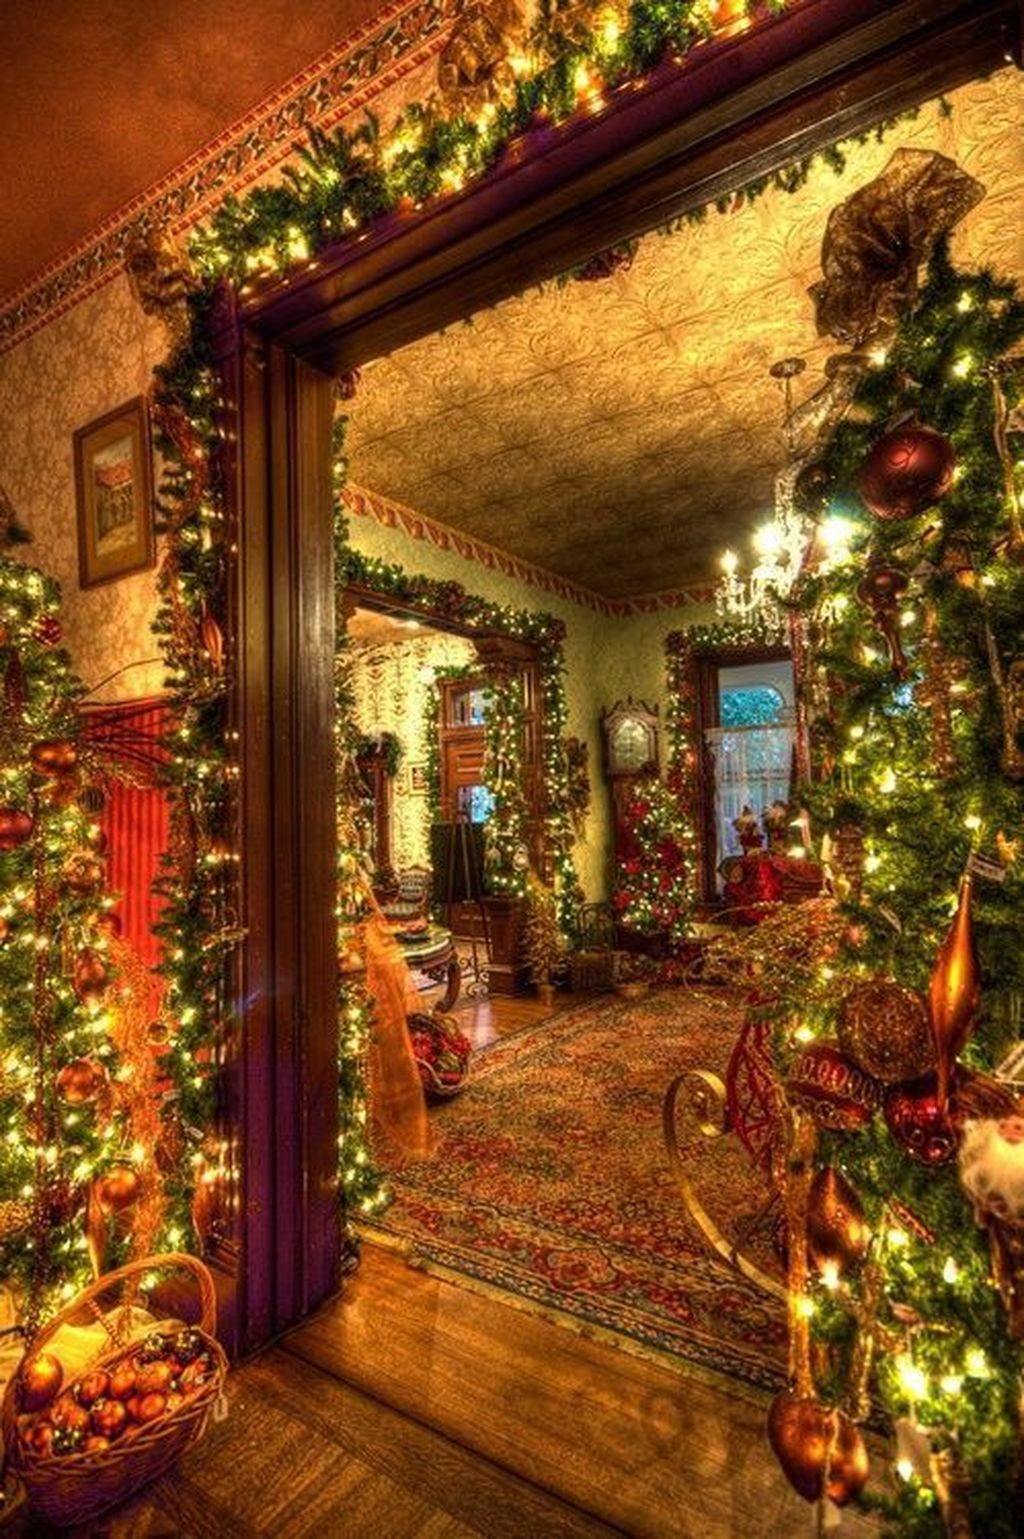 Wonderful Interior And Exterior Atmosphere Ideas For Christmas Décor To Copy20